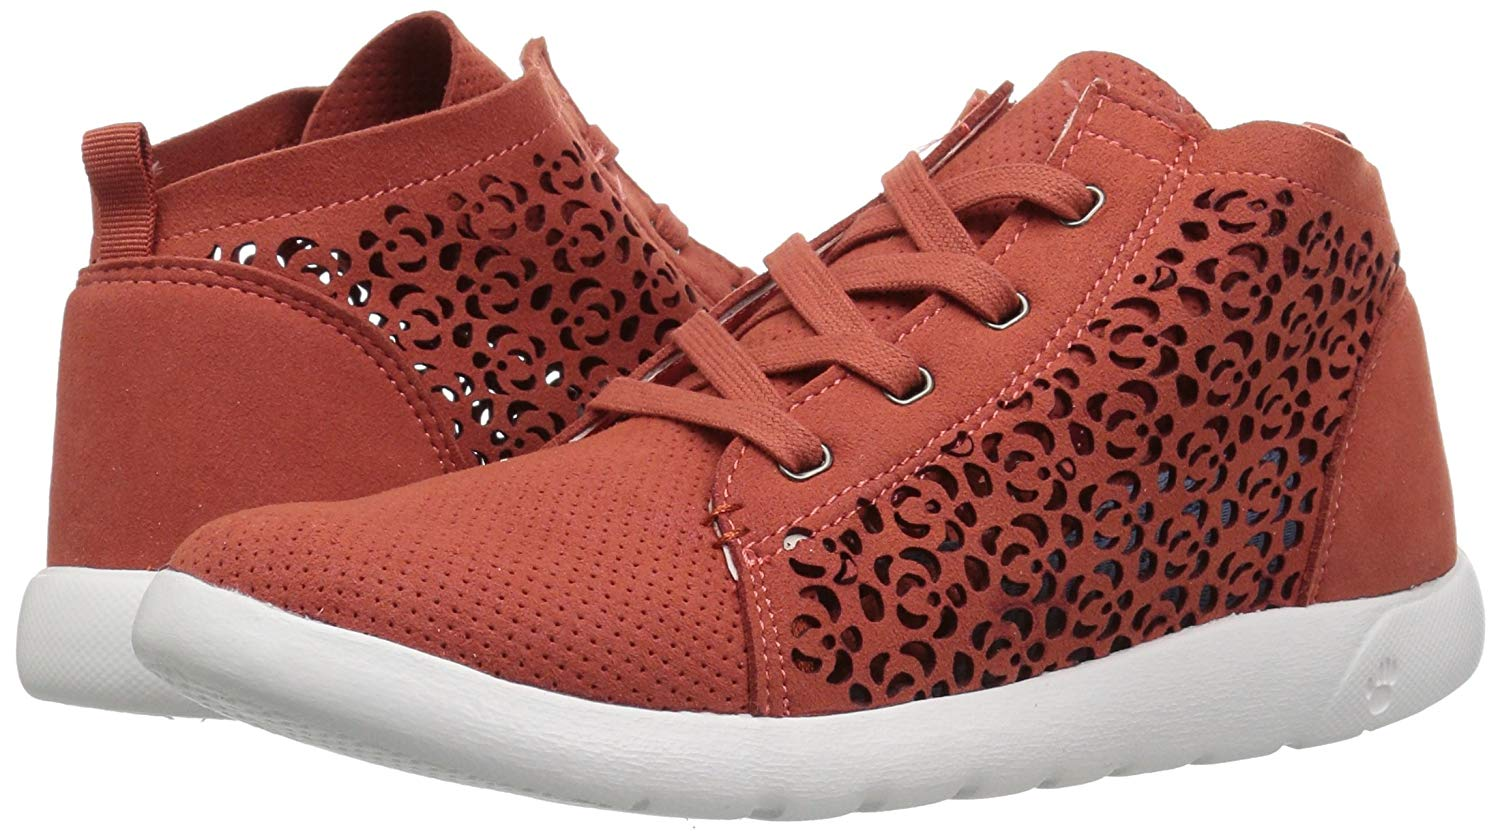 291efd20416 Bearpaw Womens savannah Hight Top Lace Up Fashion Sneakers